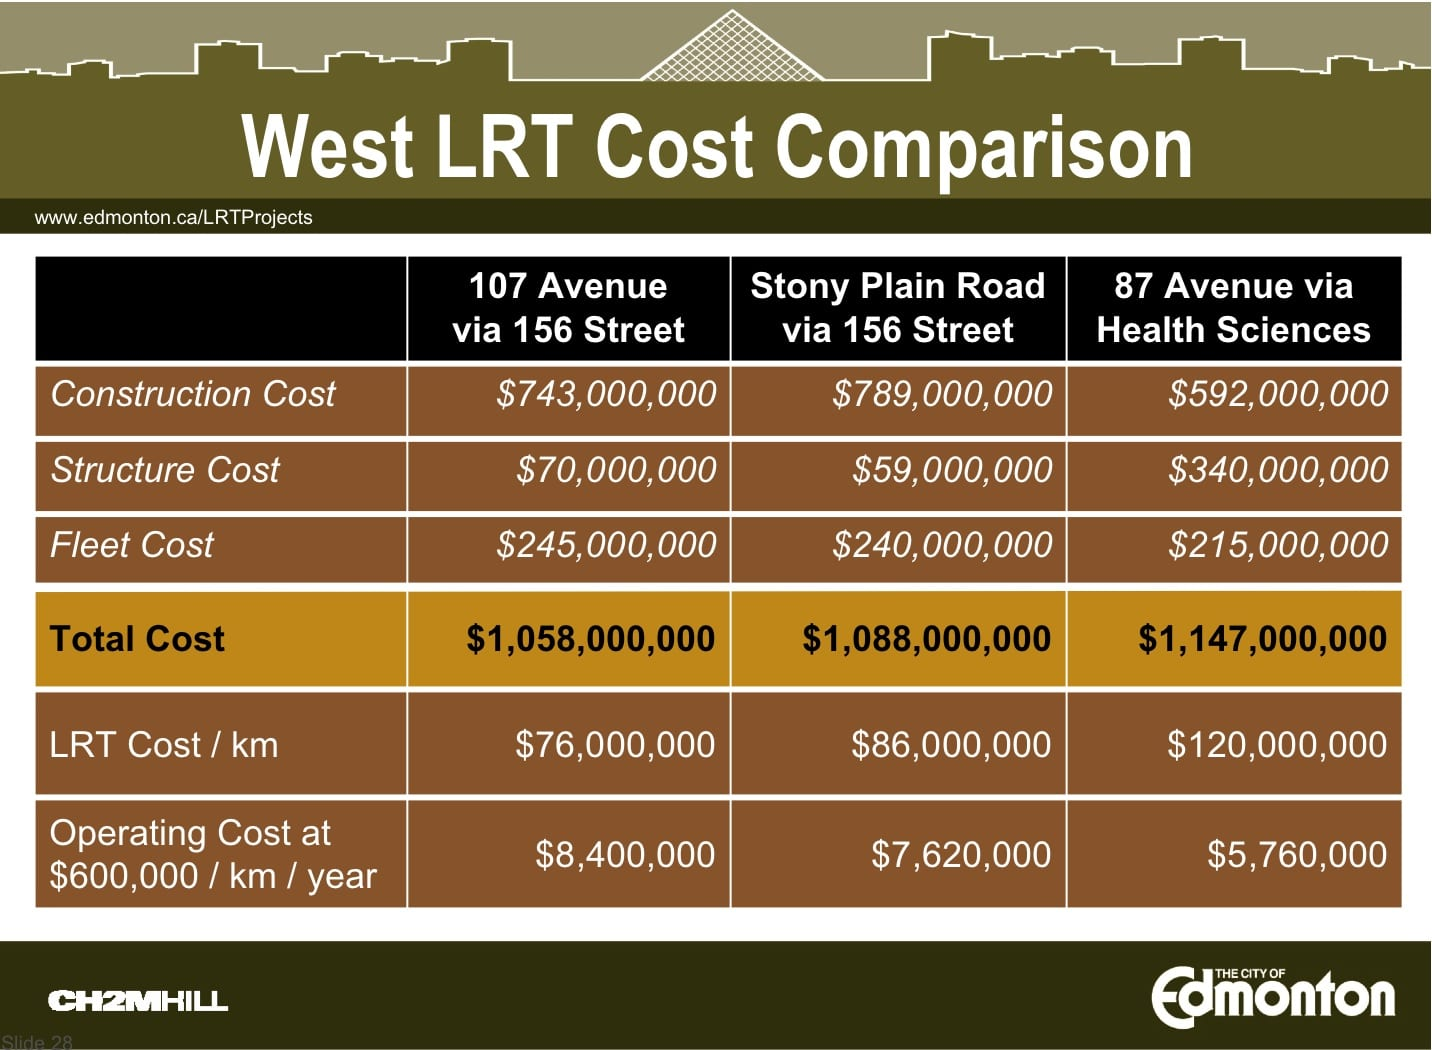 WLRT alternative route cost comparison